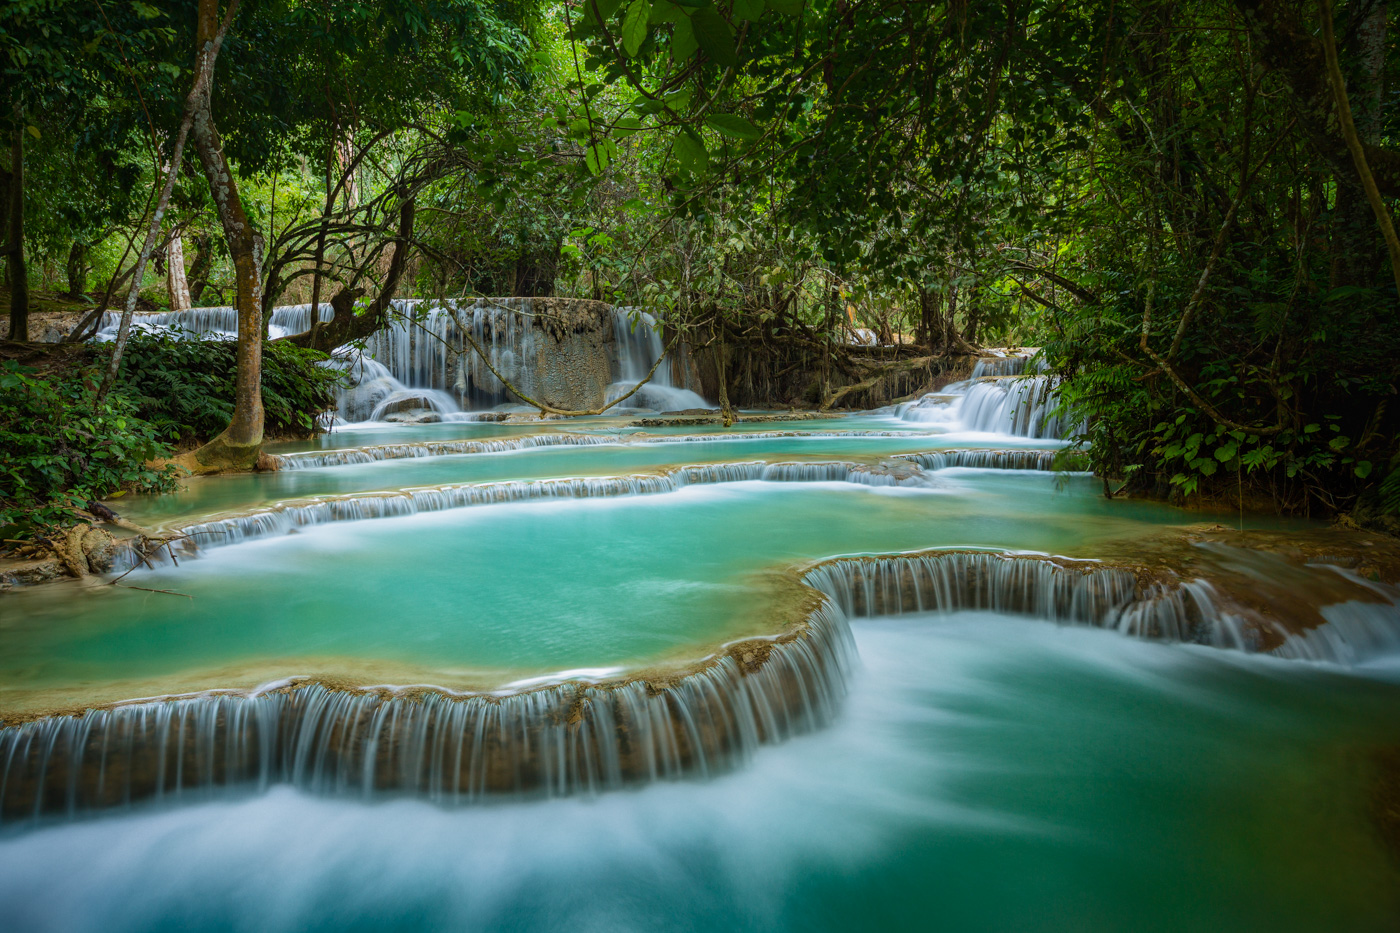 Cascades in Laos